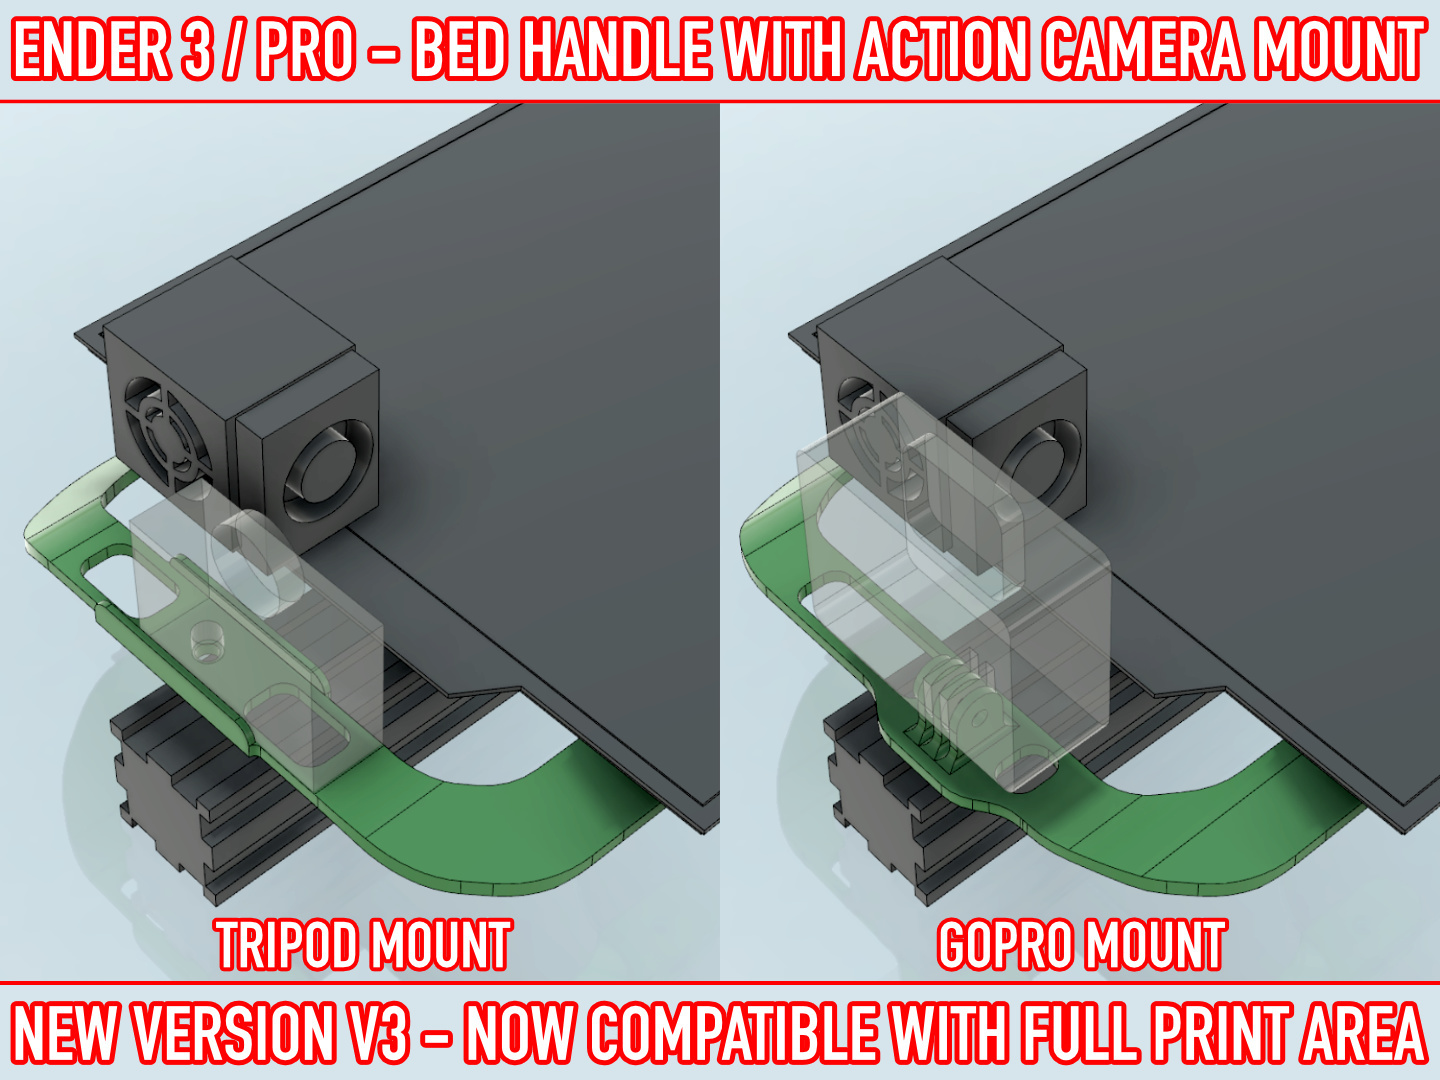 01.jpg Download free STL file ADKS - Ender 3 Bed Handle with action cam mount • Template to 3D print, Adarkstudio